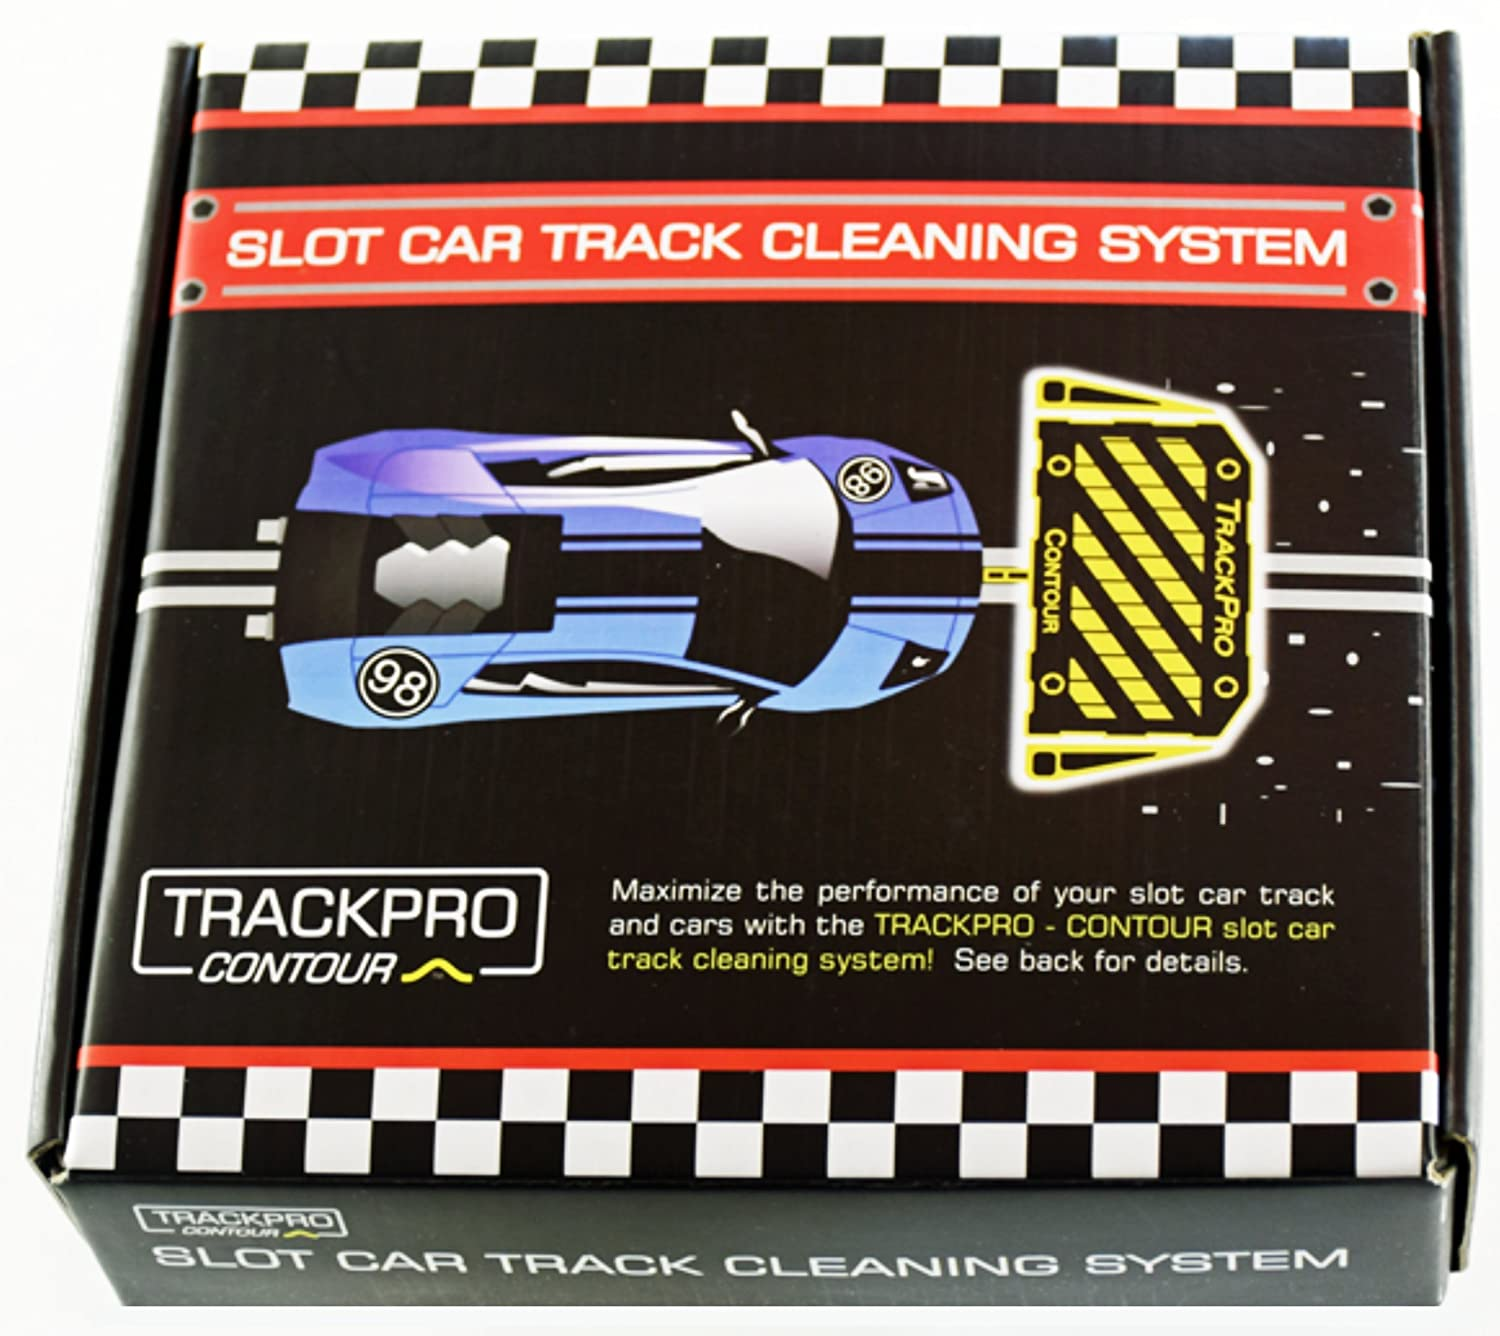 Trackpro Contour Slot Car Track Cleaning System By Wiring Hitech Safety Displays Ltd Toys Games